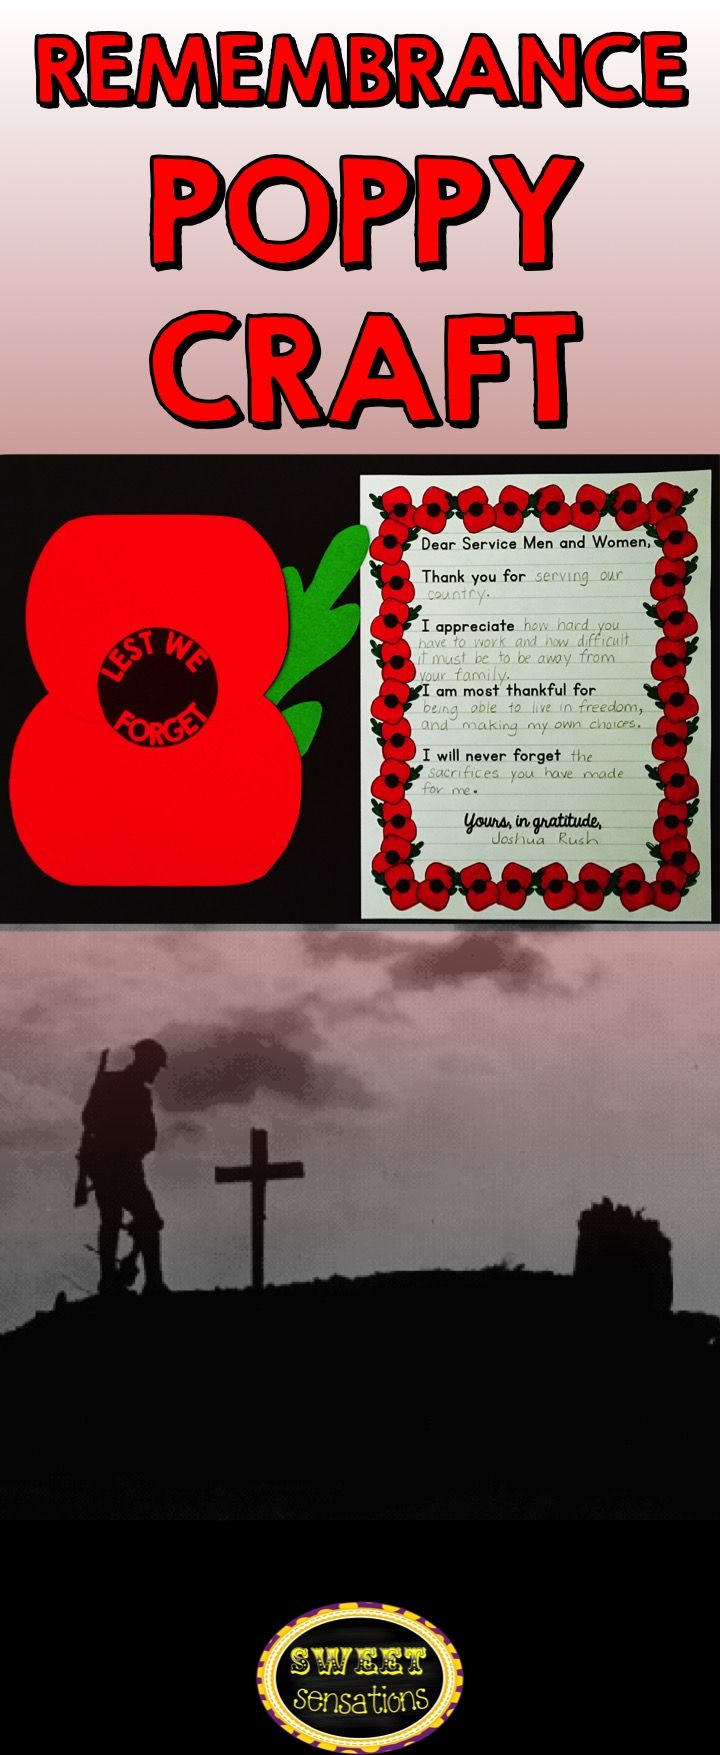 Remembrance day poppy craft for Canada - students make a simple poppy and record their gratitude on optional writing paper. Simple and powerful to remember those who sacrificed so much.